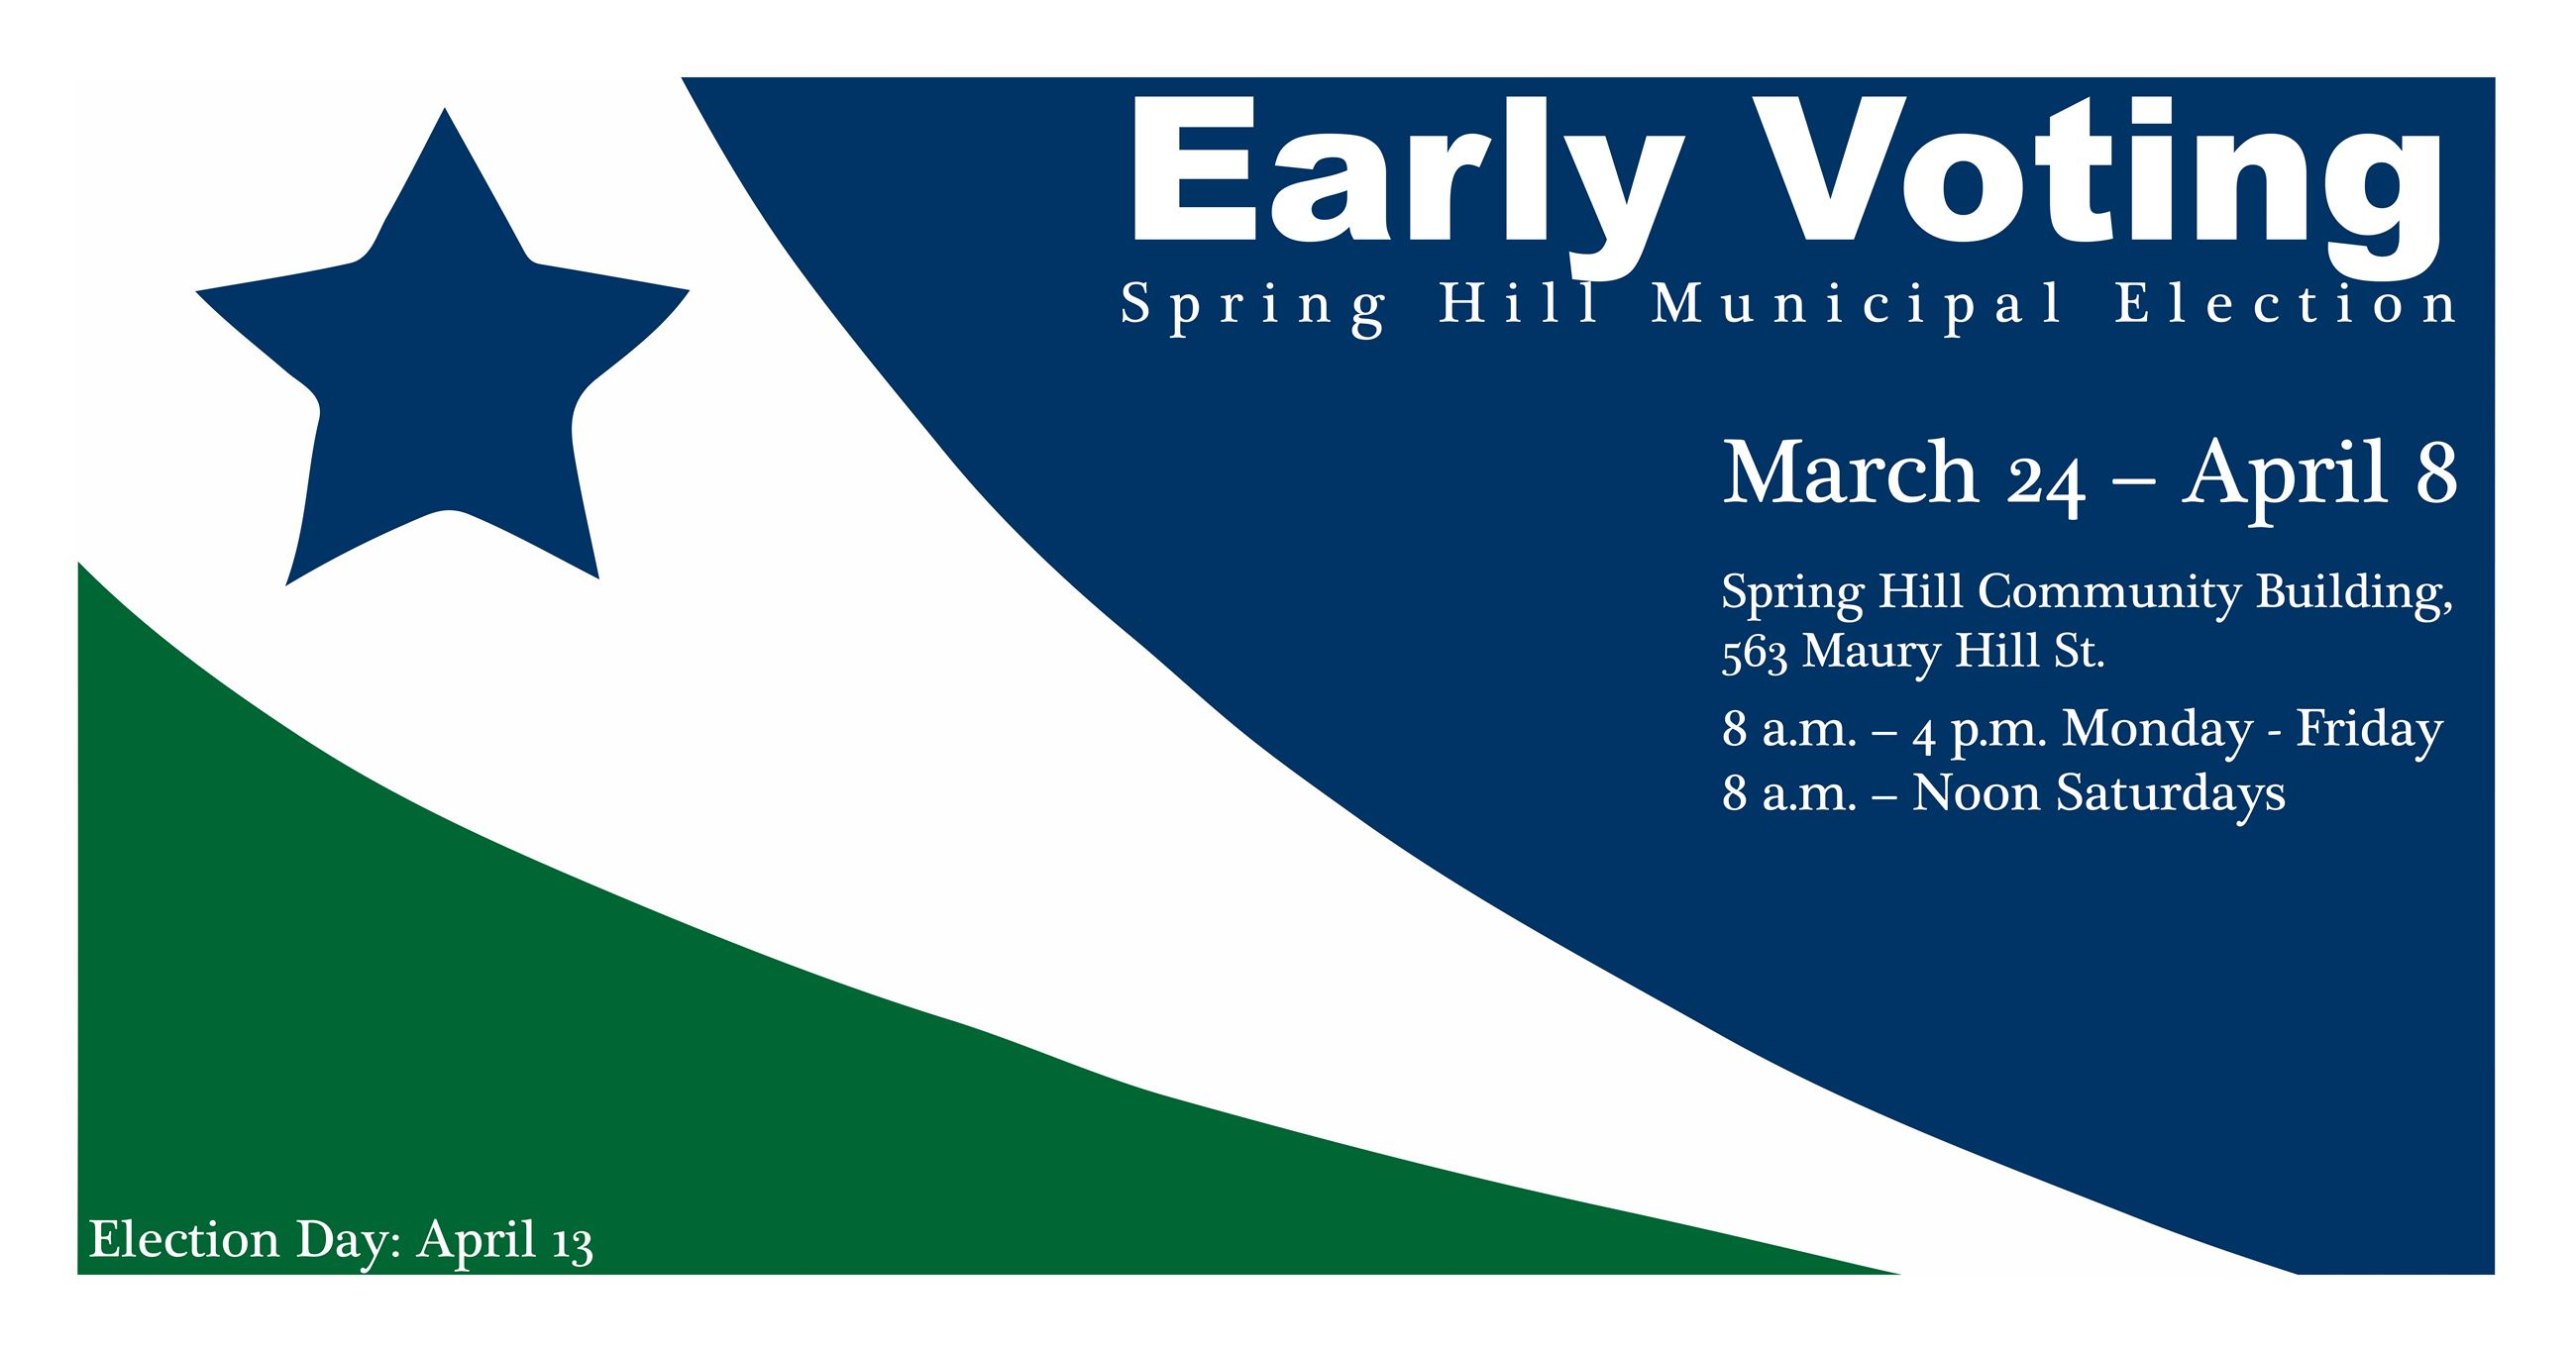 Early Voting Info